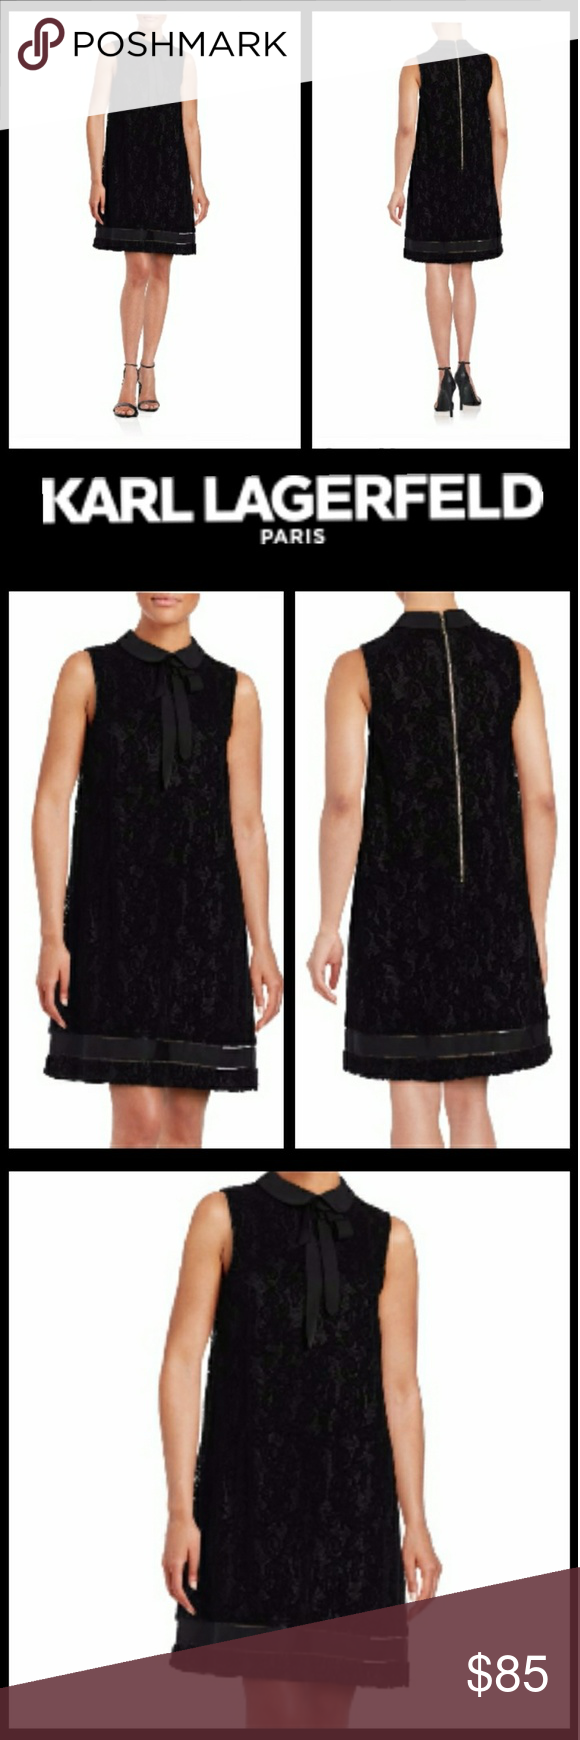 Karl Lagerfeld Paris Collared Lace Shift Dress Collared Lace Shift ...